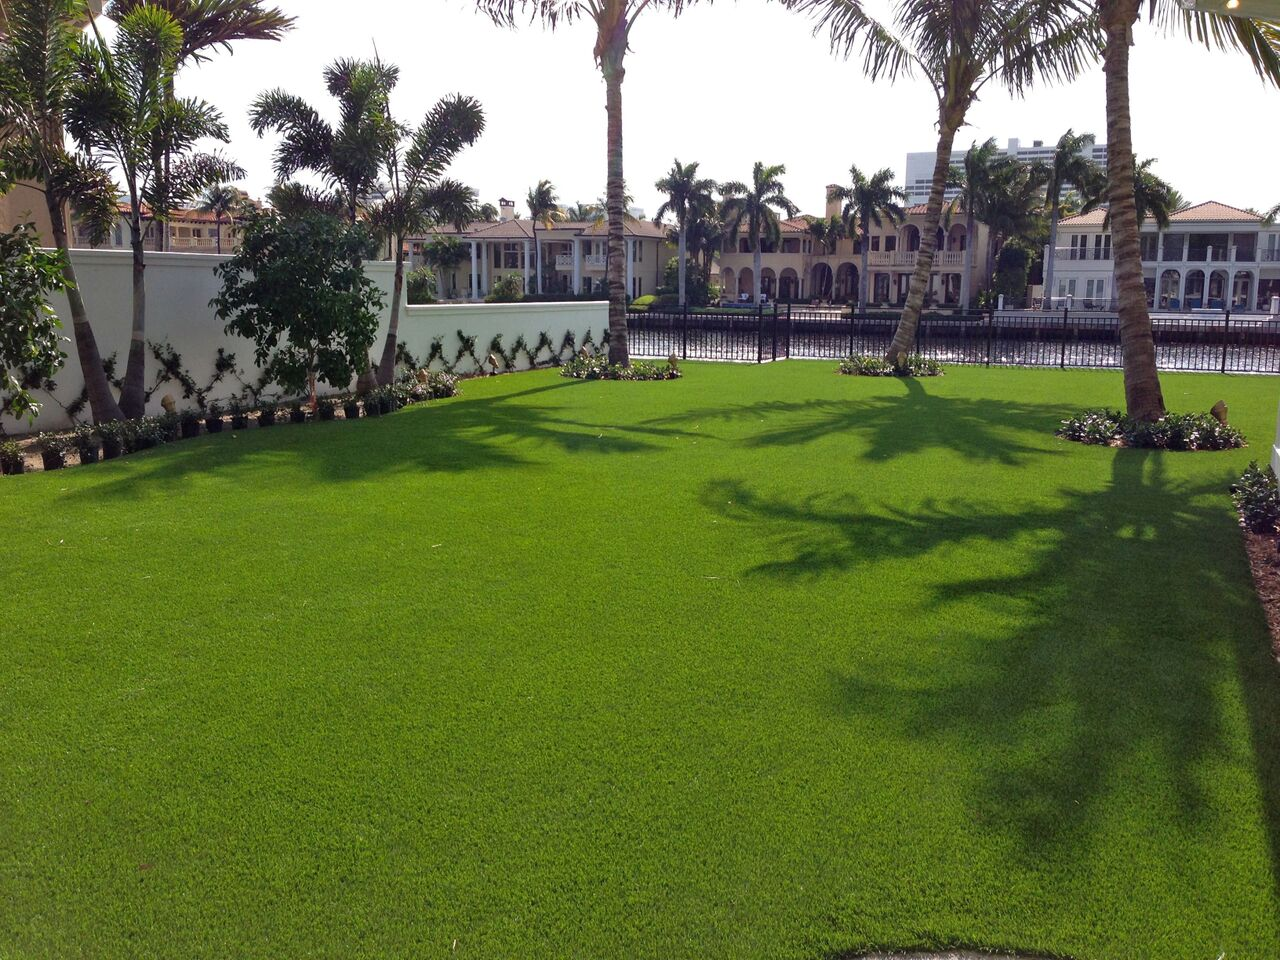 who is the best supplier of artificial grass in west palm beach